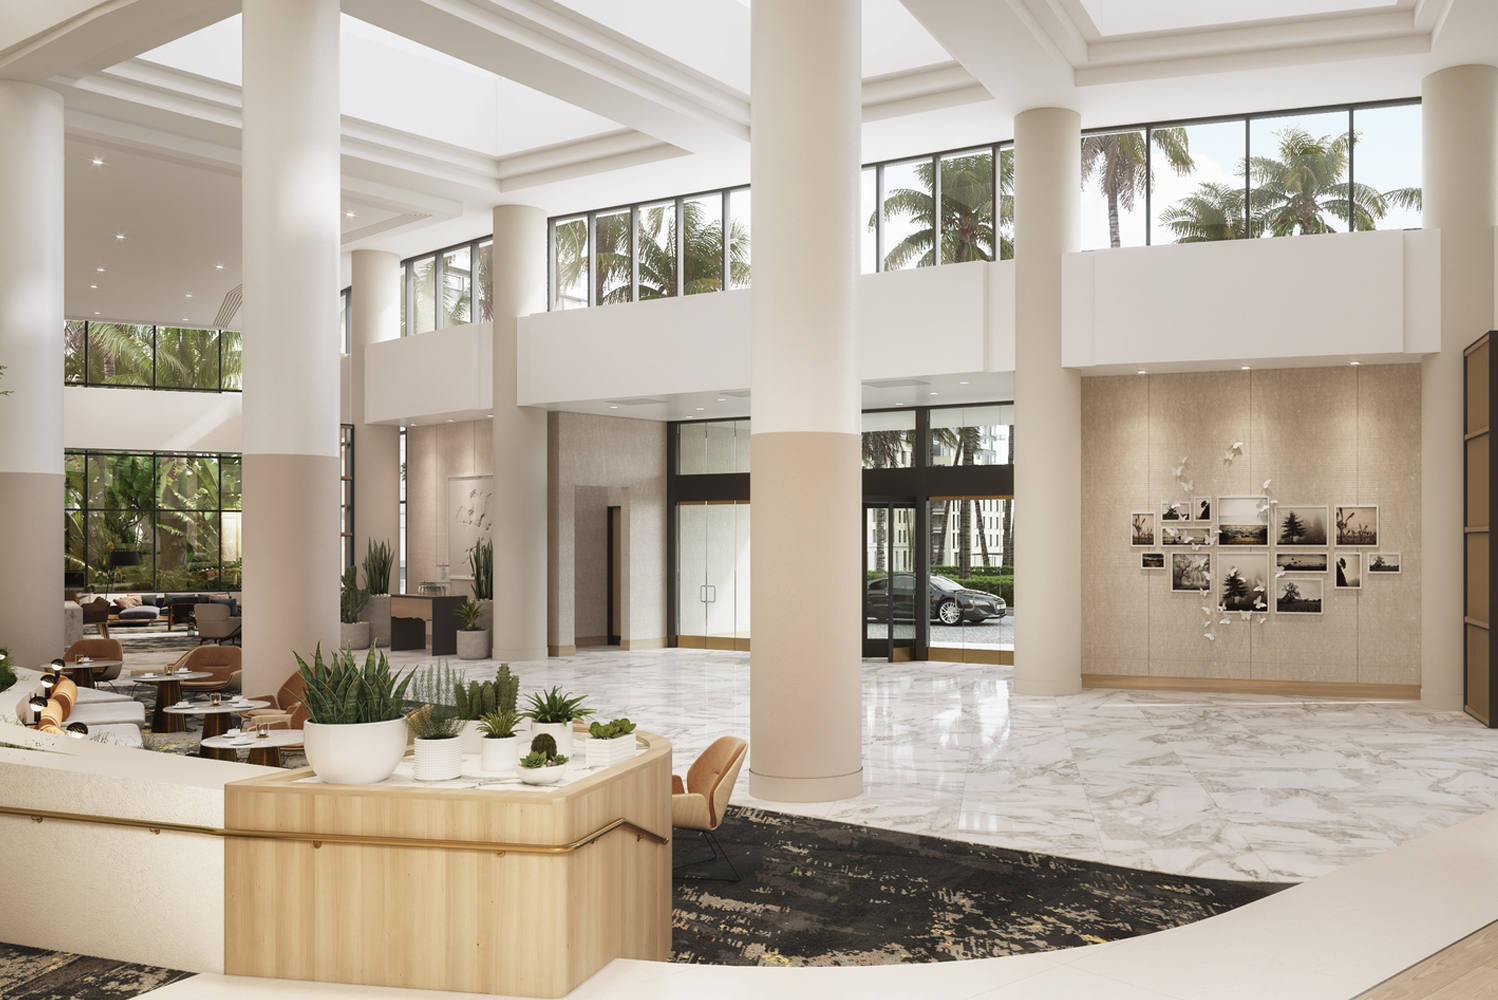 Involved in the transformation of the property originally built in 1988 were architect Houston Tyner and designer Vanrooy Creative Group.